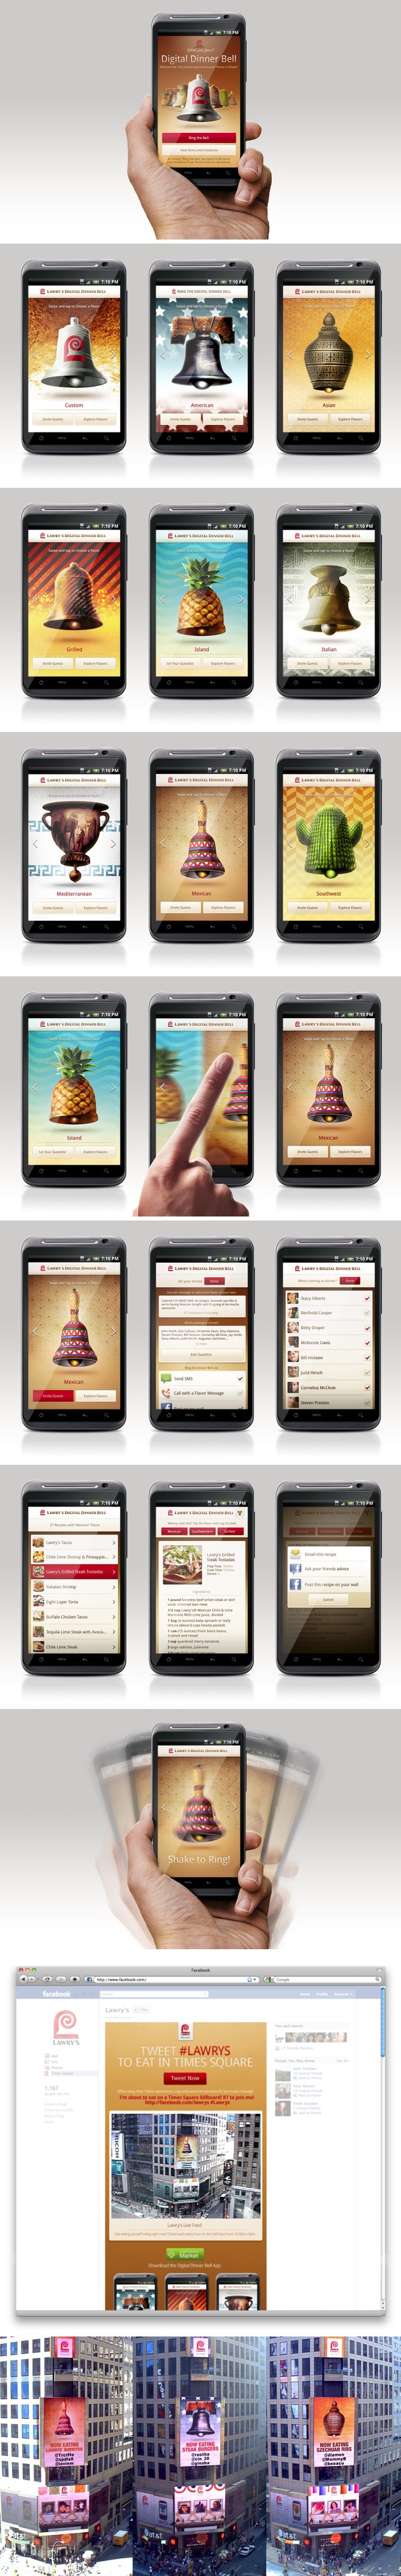 Lawry's Digital Dinner Bell by Adam Jesberger, via Behance *** Lawry's Digital Dinner Bell app for Android gives you a playful modern way to notify your dinner guests. Select your unique flavor bell, find your recipe, and set your guest list. A simple shake or tap of your phone rings your customized Digital Dinner Bell and lets your family know dinner is ready via SMS, Facebook, and/or an automated phone call.